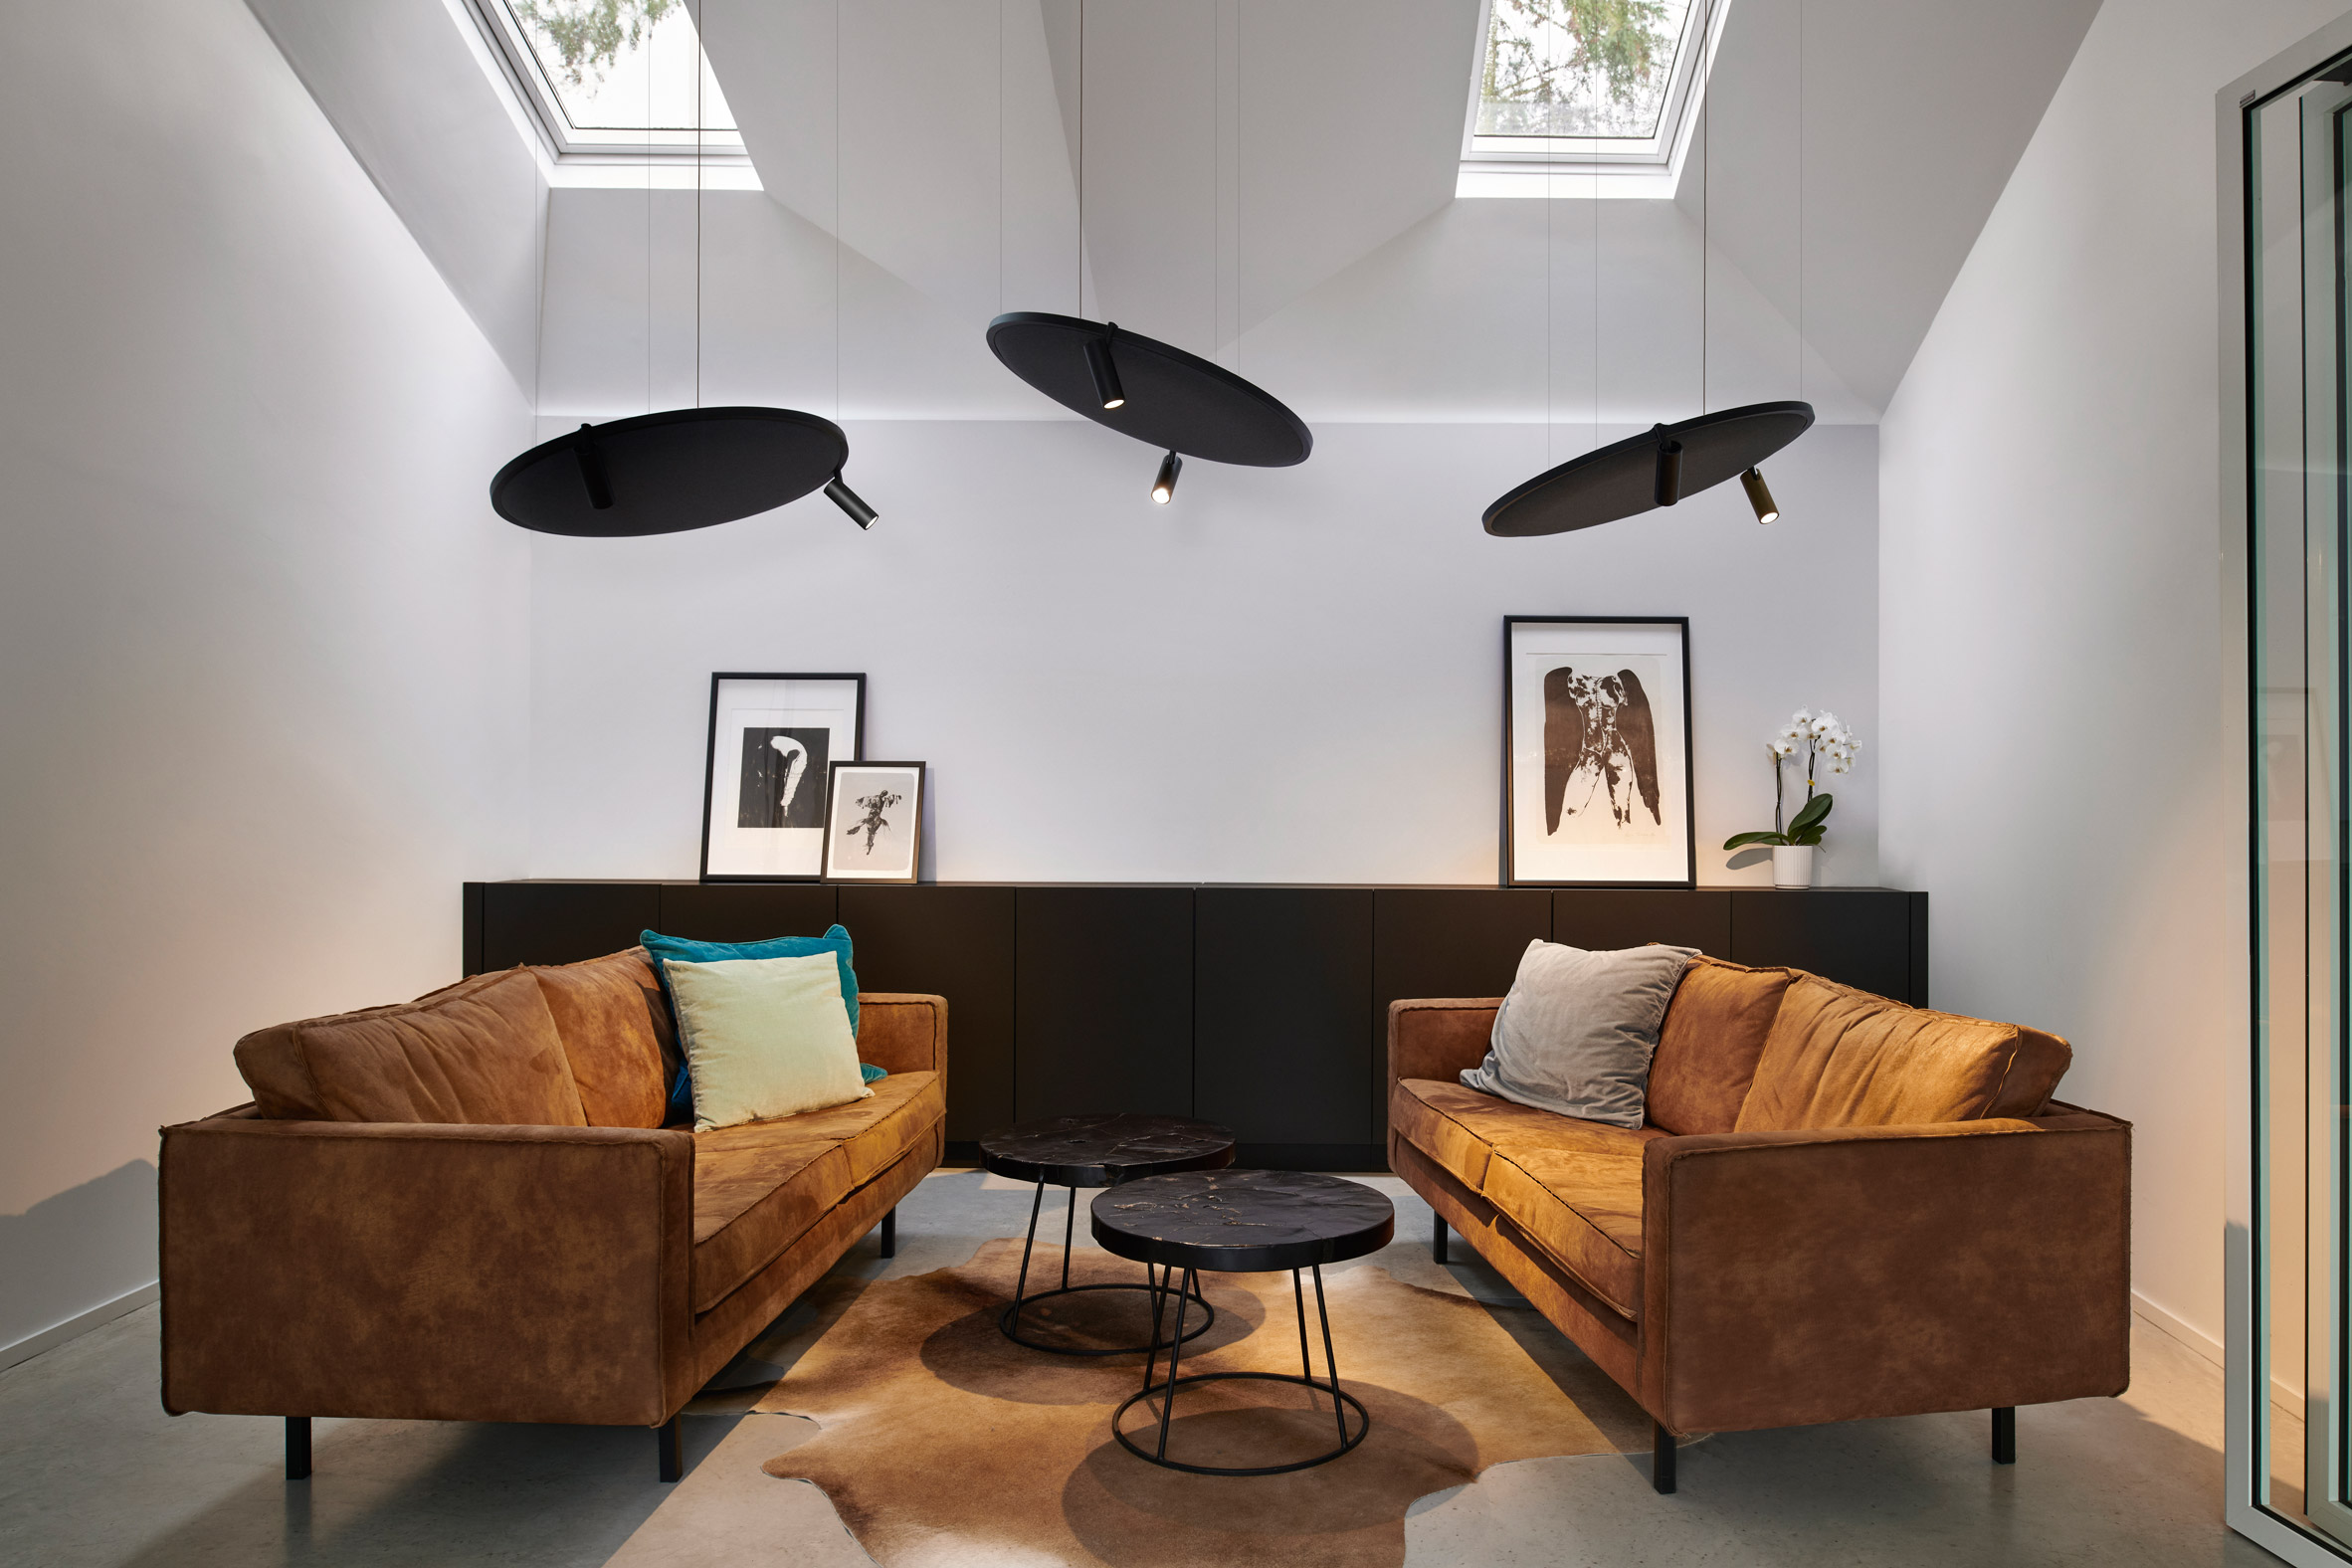 Lighting and sound system in a home space